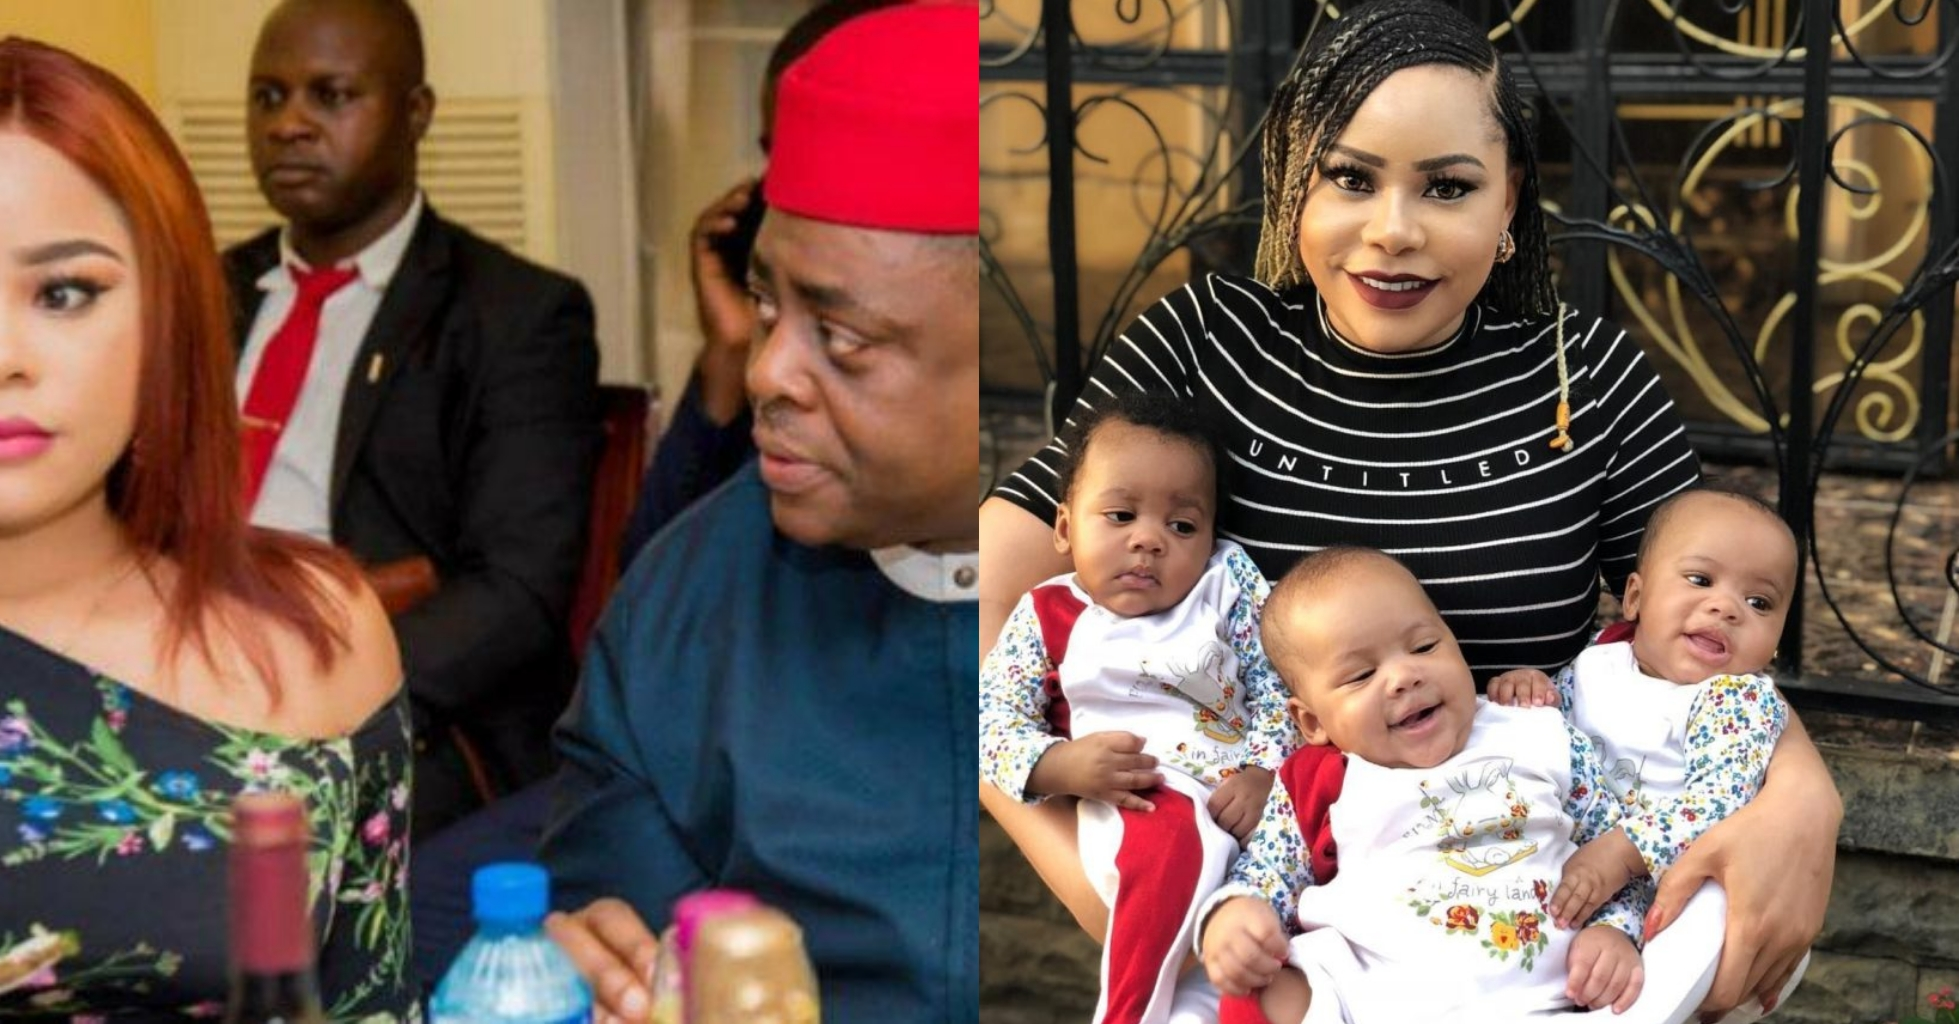 Femi Fani-Kayode and his estranged wife, Precious Chikwendu